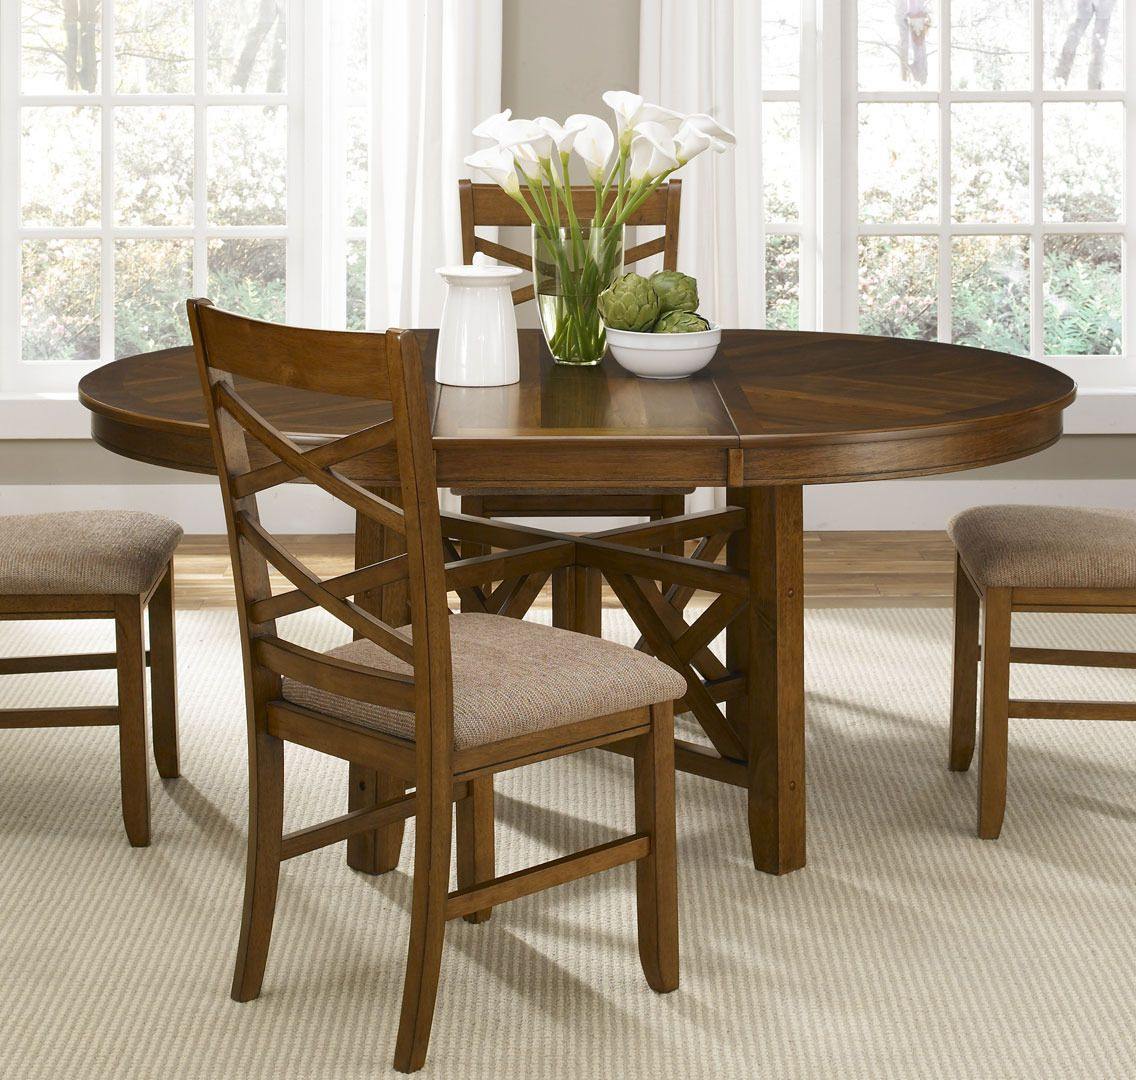 Bistro Round Oval X Base Dining Table By Liberty Home Gallery Stores Oval Table Dining Dining Table Sizes Round Dining Room Table